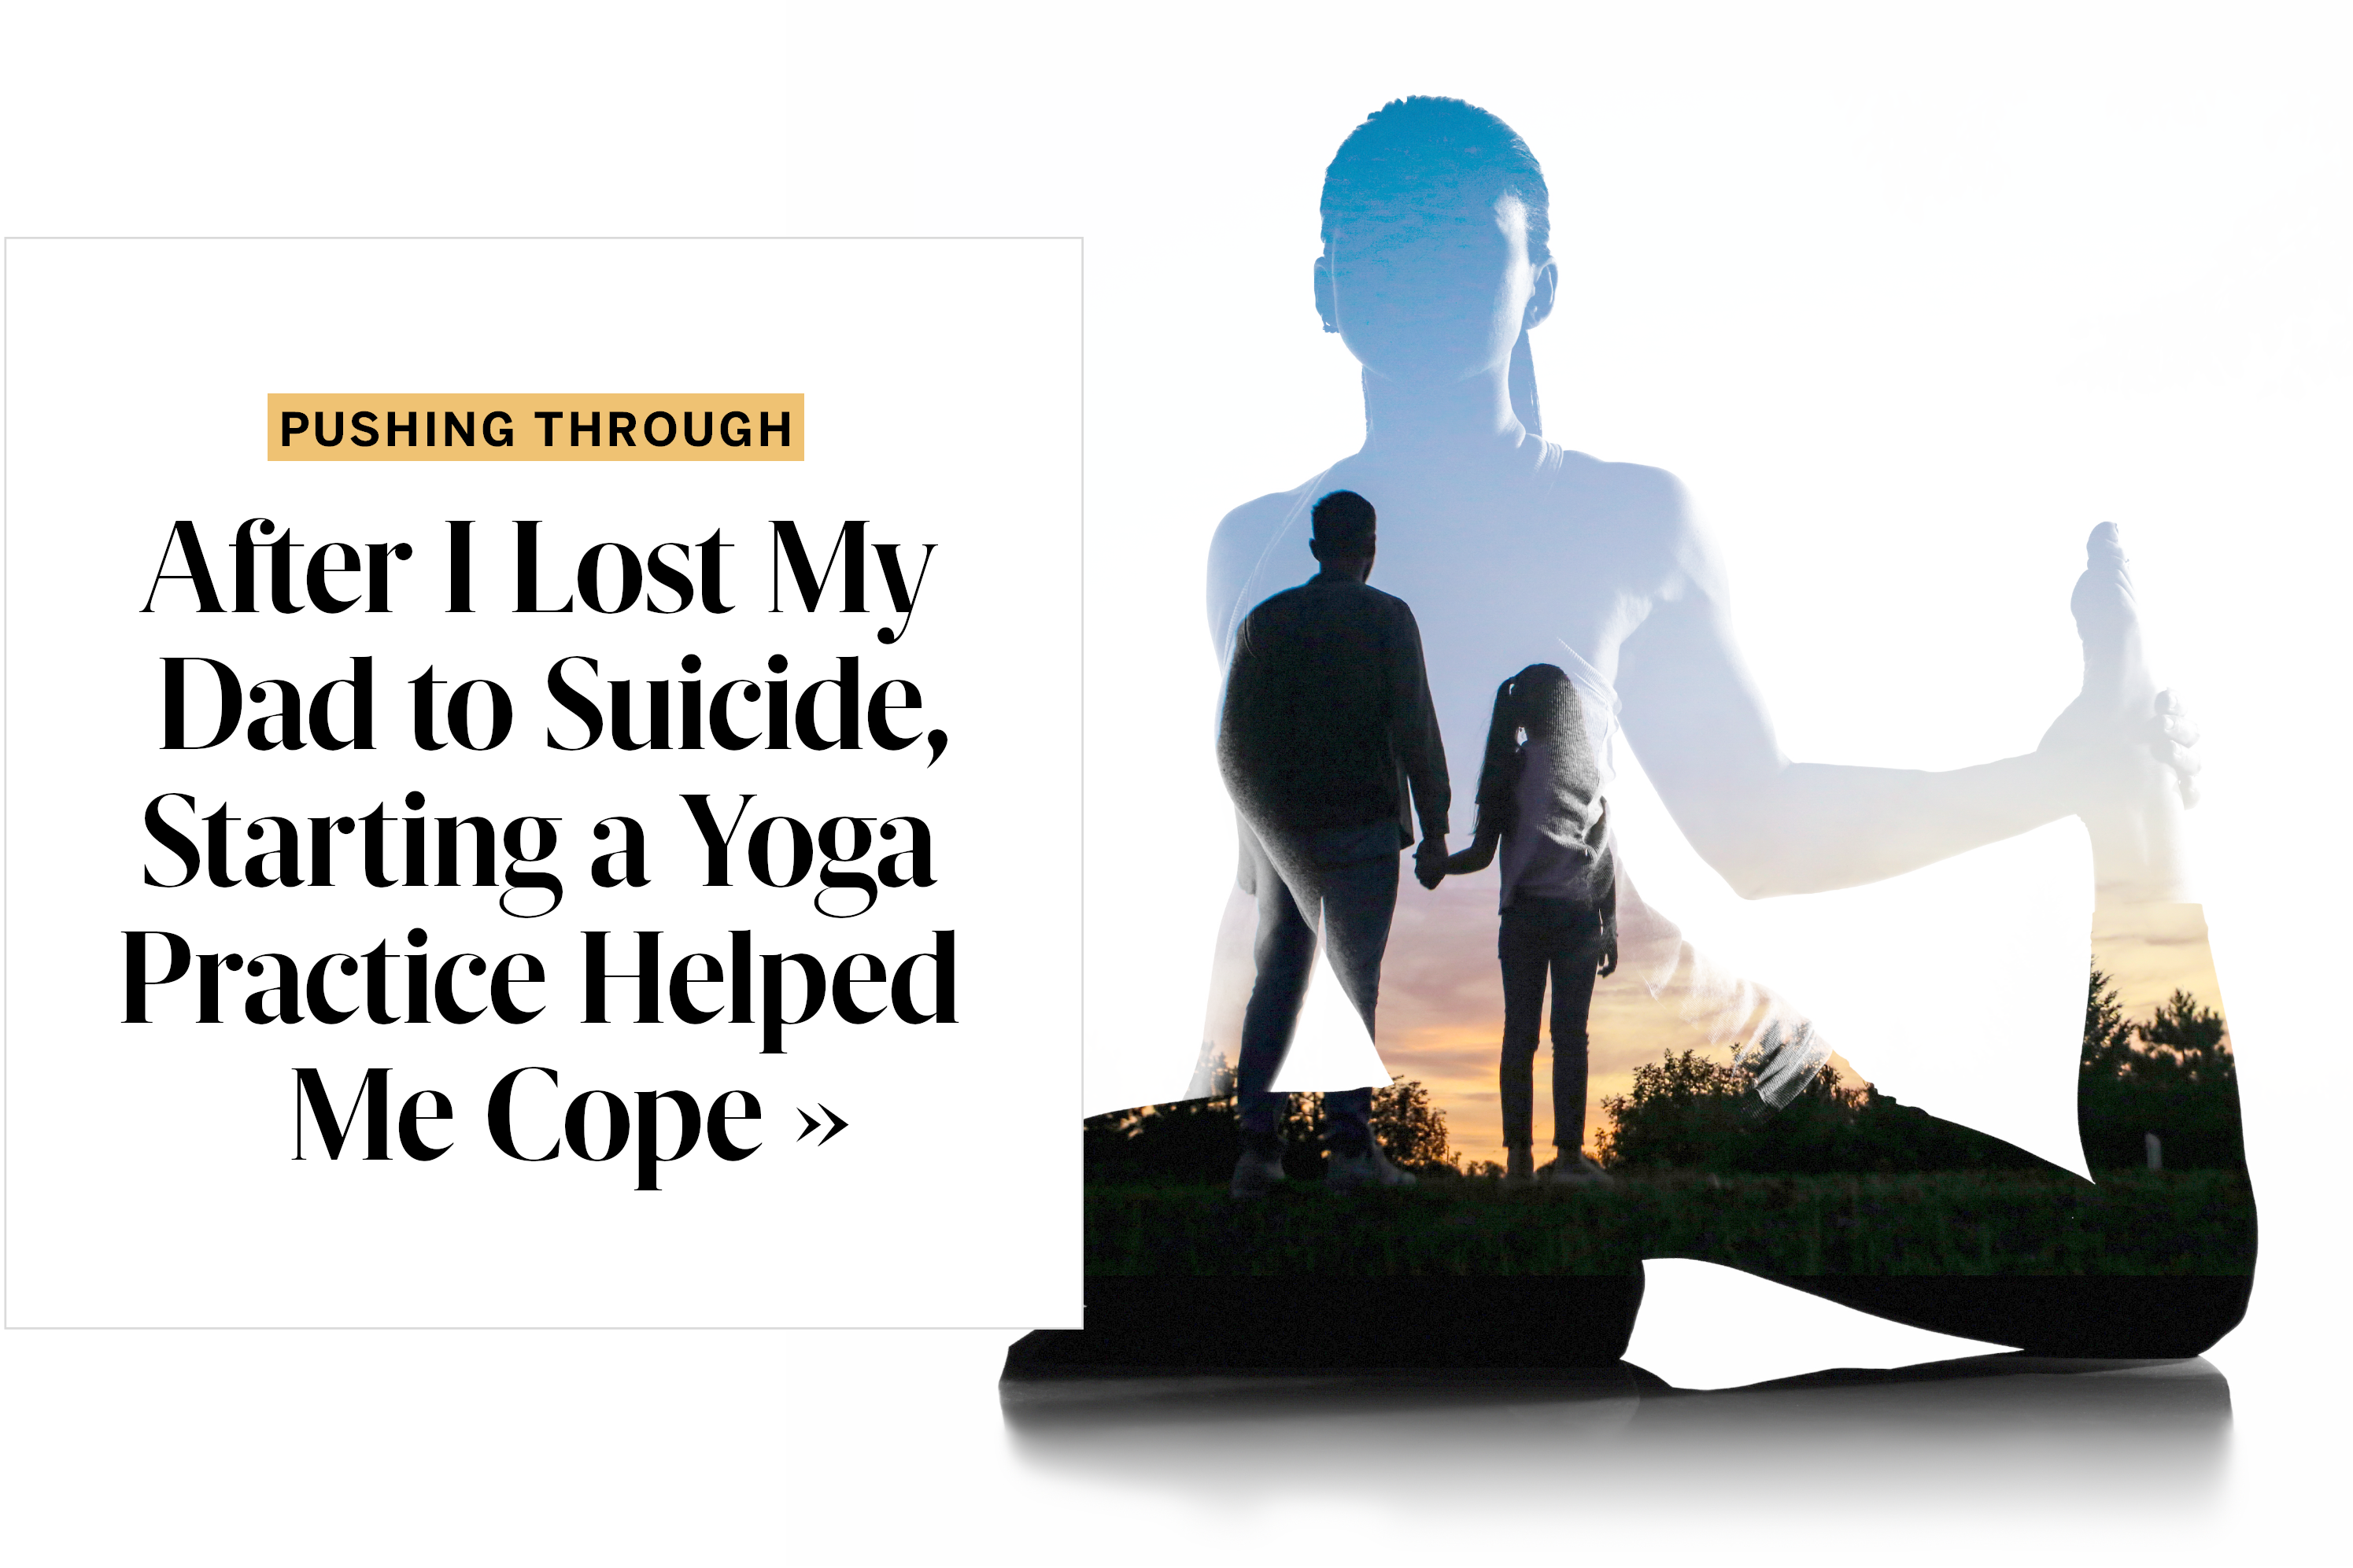 After I Lost My Dad to Suicide, Starting a Yoga Practice Helped Me Cope